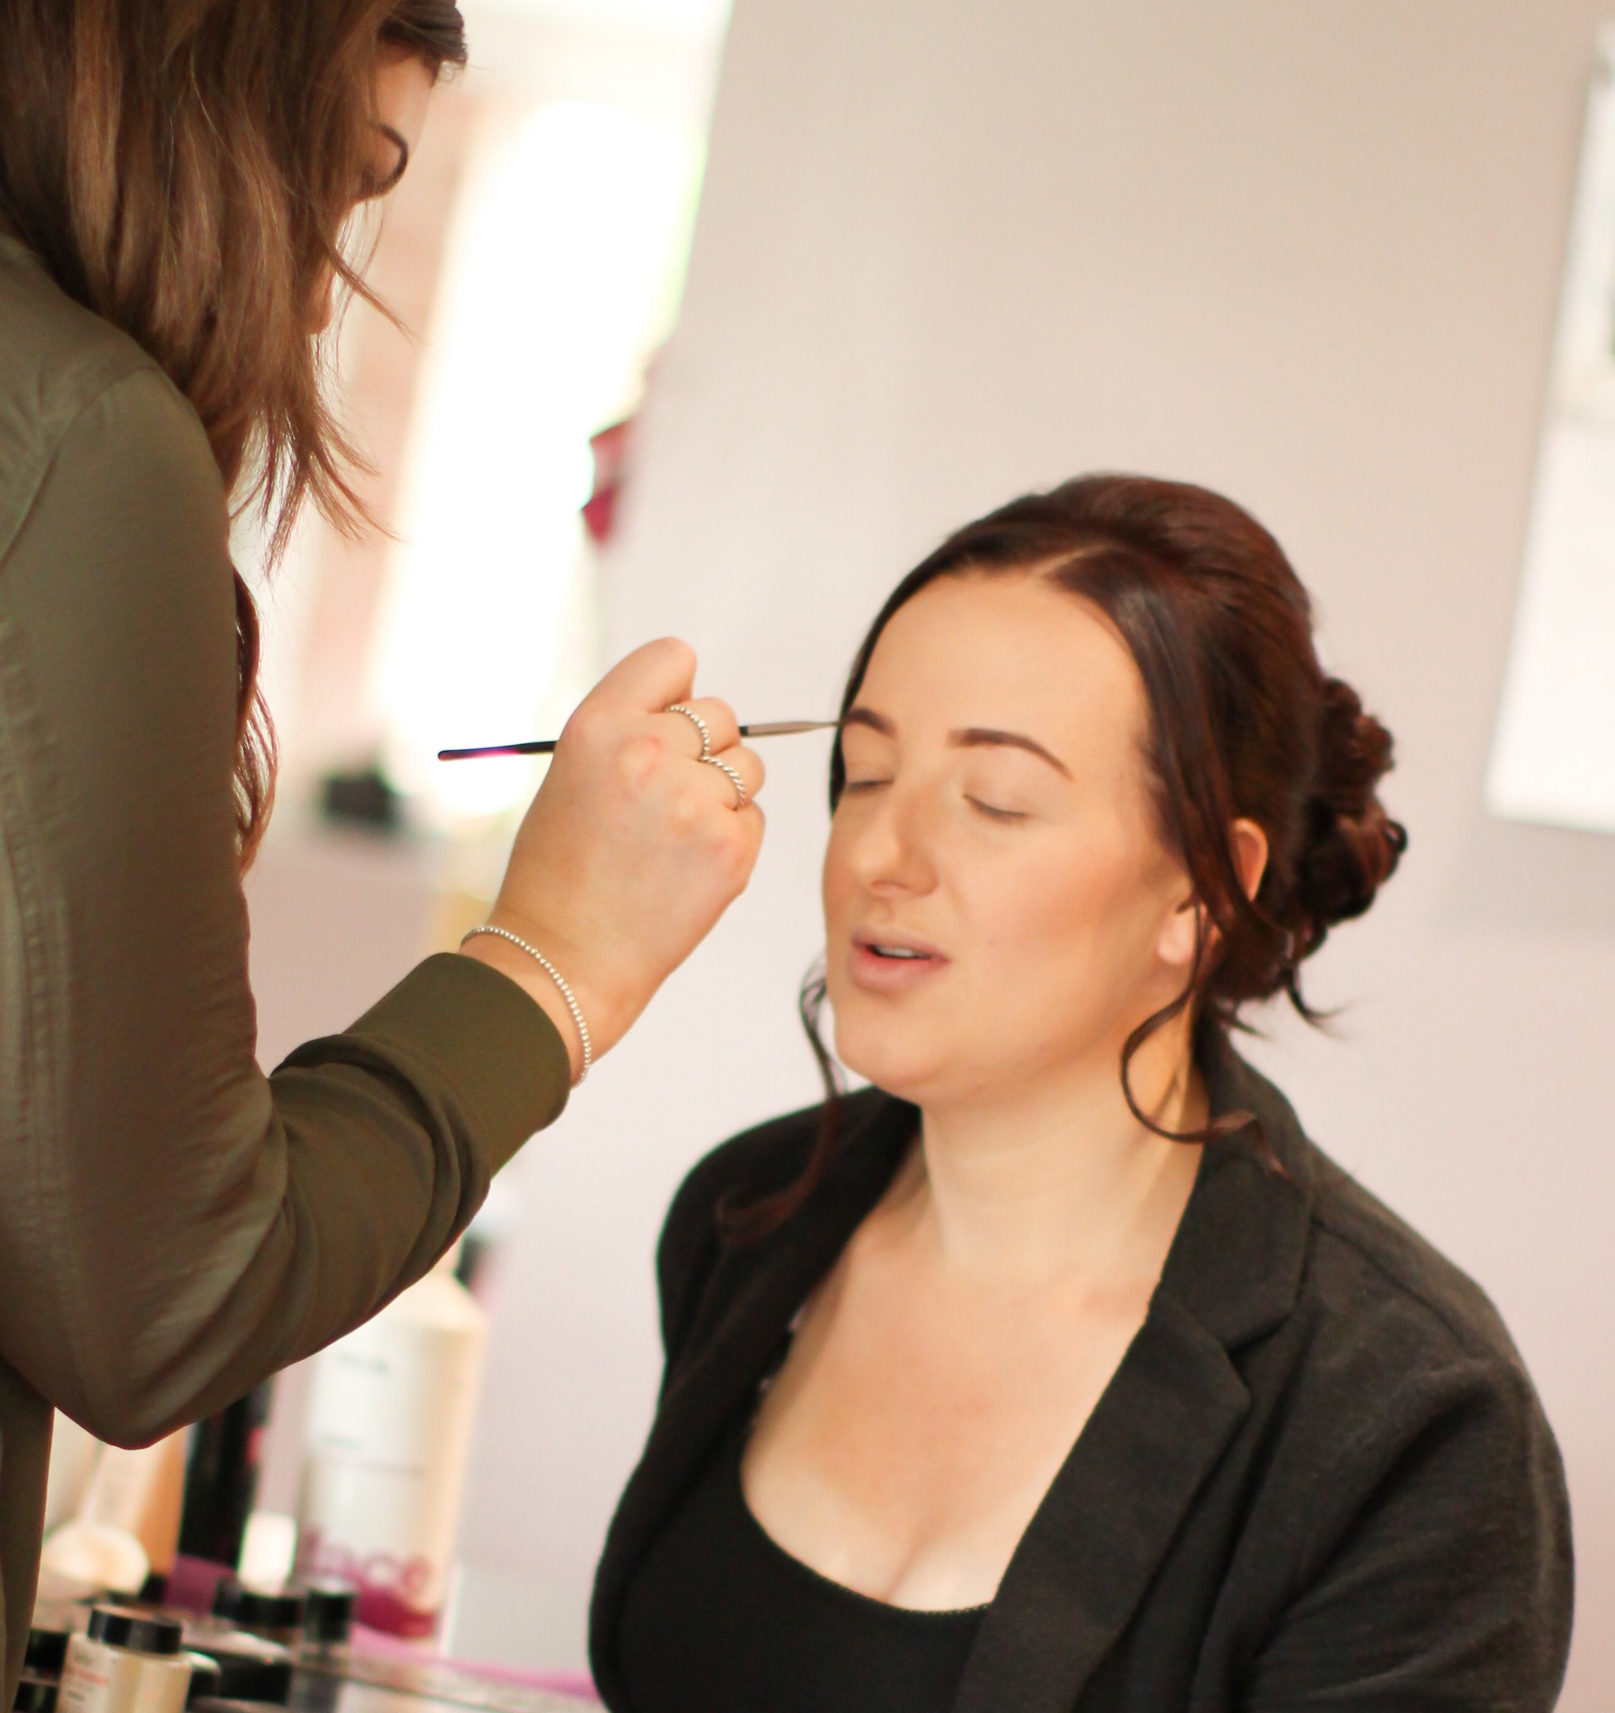 Nails and make-up by Jodie - Jodie's friendly and bubbly personality is infectious. I was lucky enough to have Jodie for my bridal make-up and have since shot a wedding with her as the make-up artist. She is a dream to work with and listens to your brief with great intent. You can guarantee your make-up will be flawless from day through to night with this lovely lady in your team!